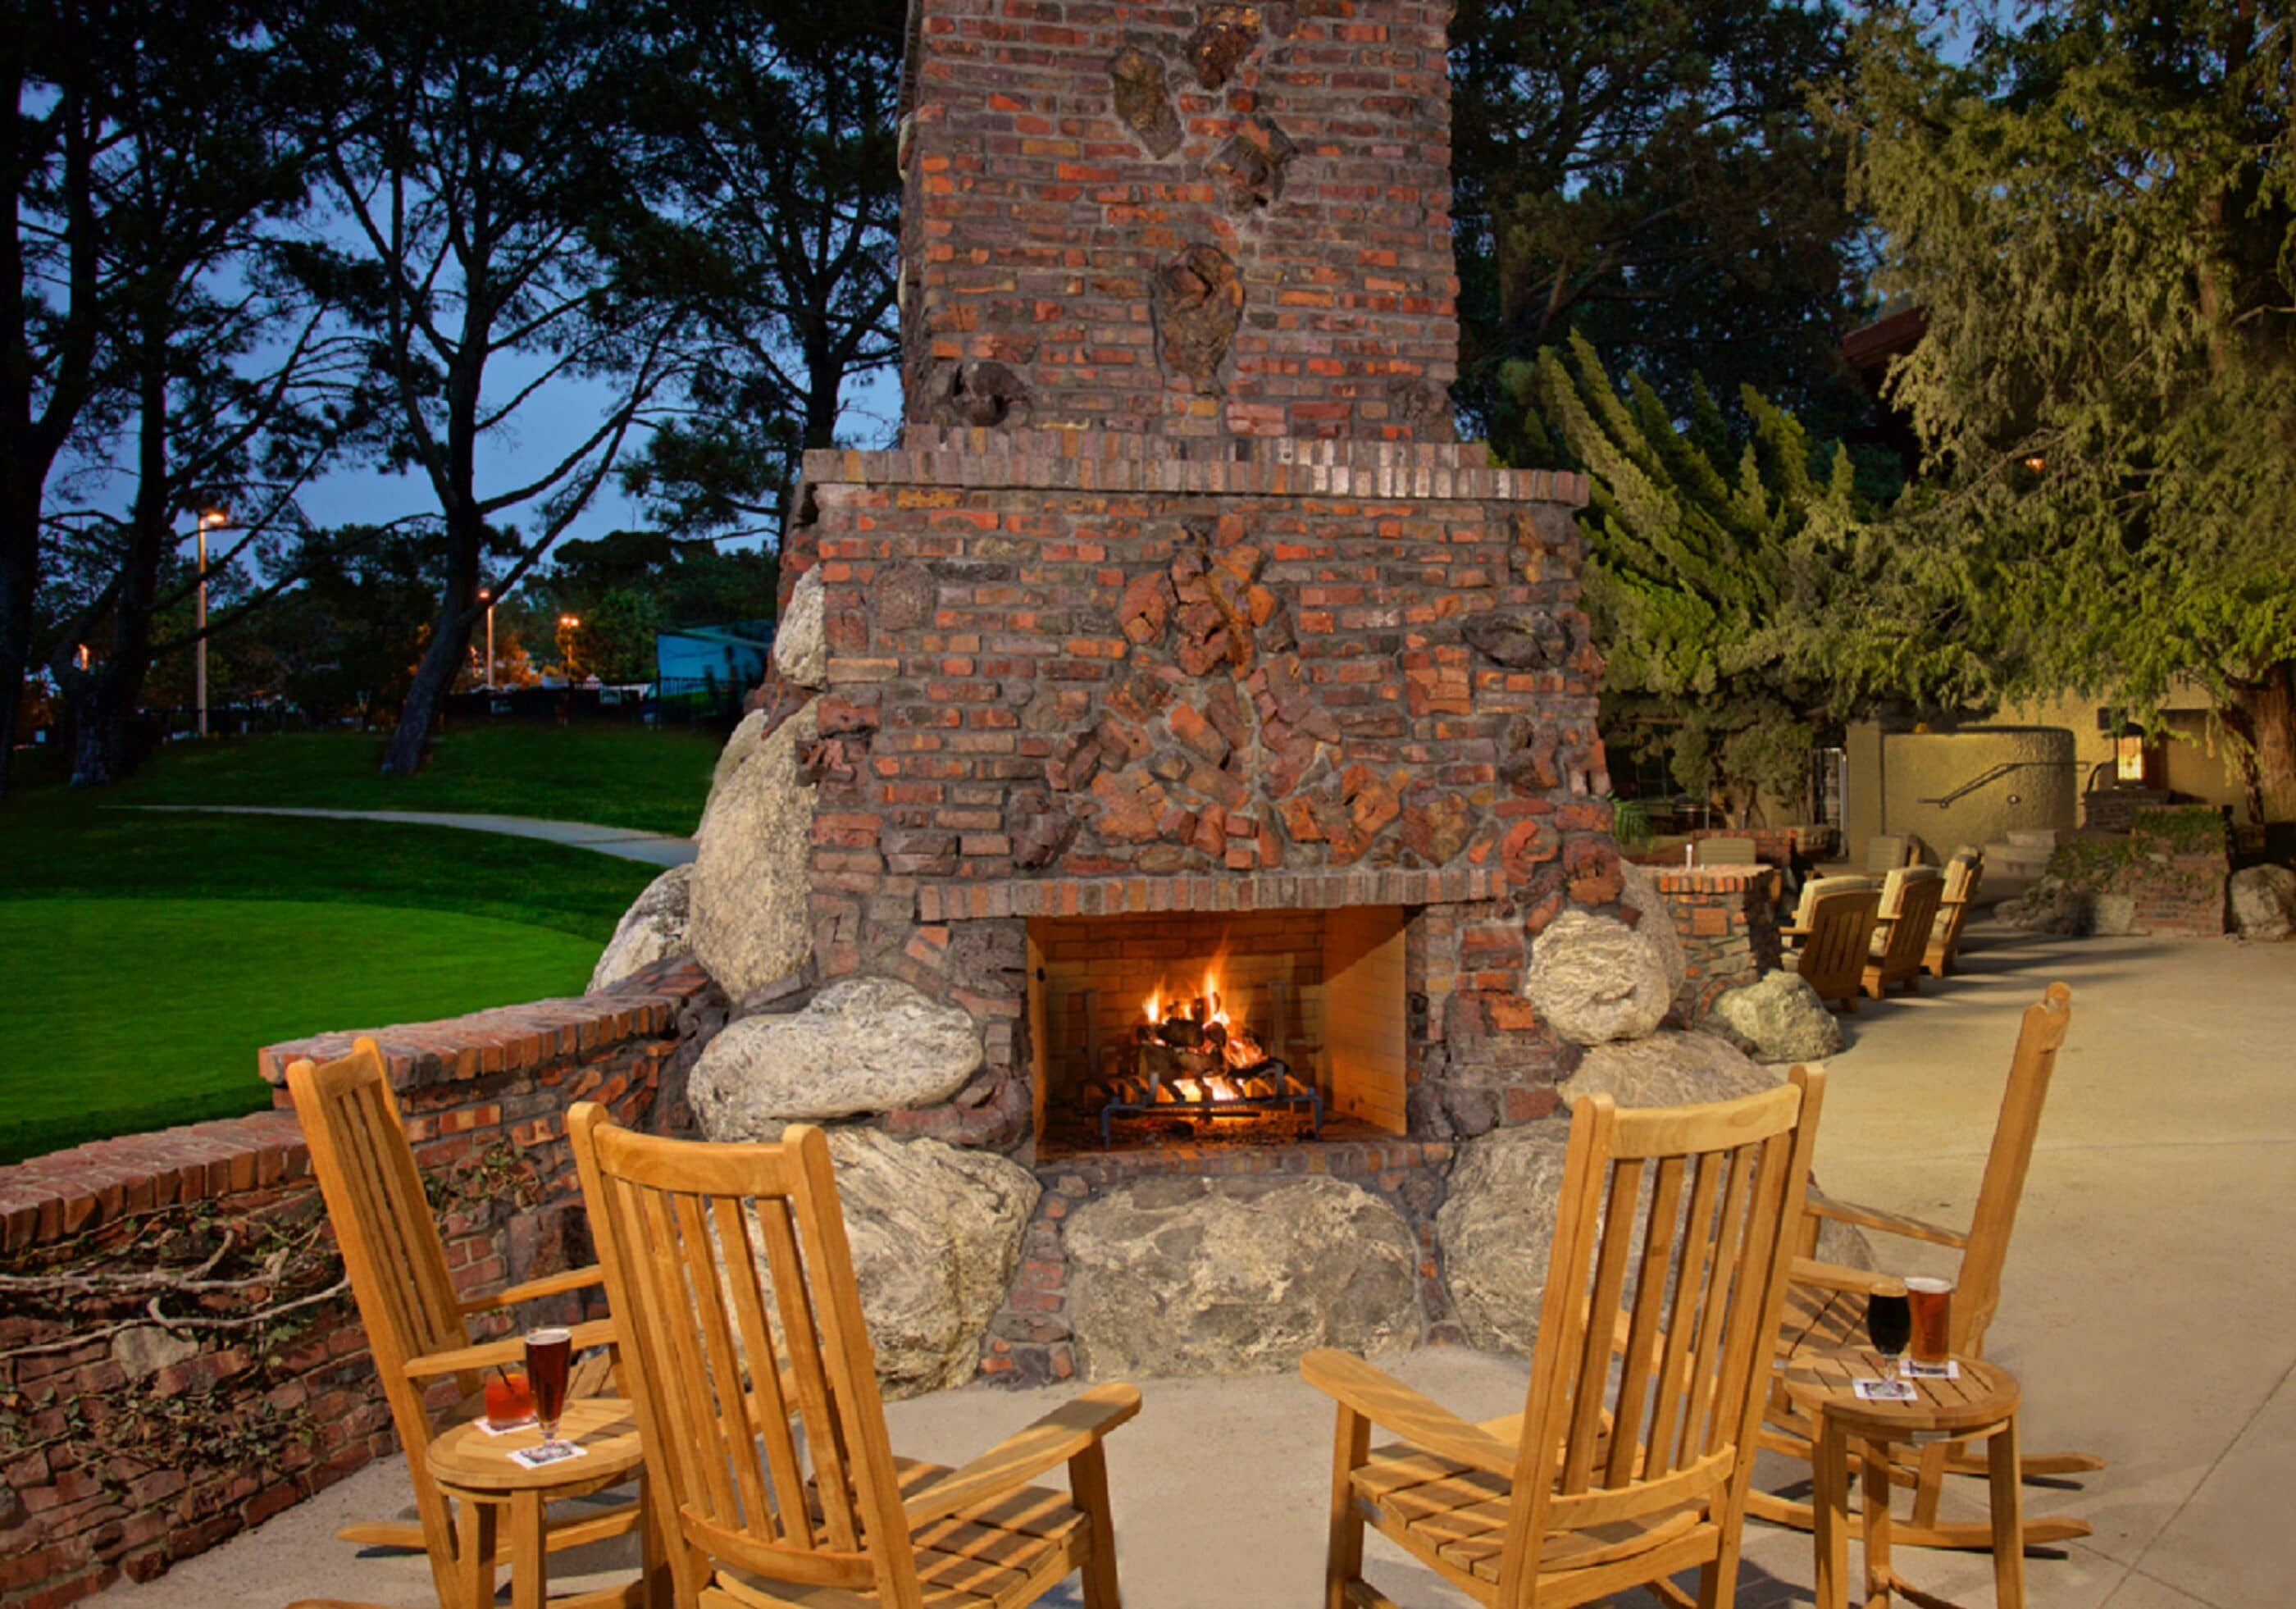 Wooden rocking chairs surround an outdoor brick fireplace on the terrace at The Grill restaurant at The Lodge at Torrey Pines.